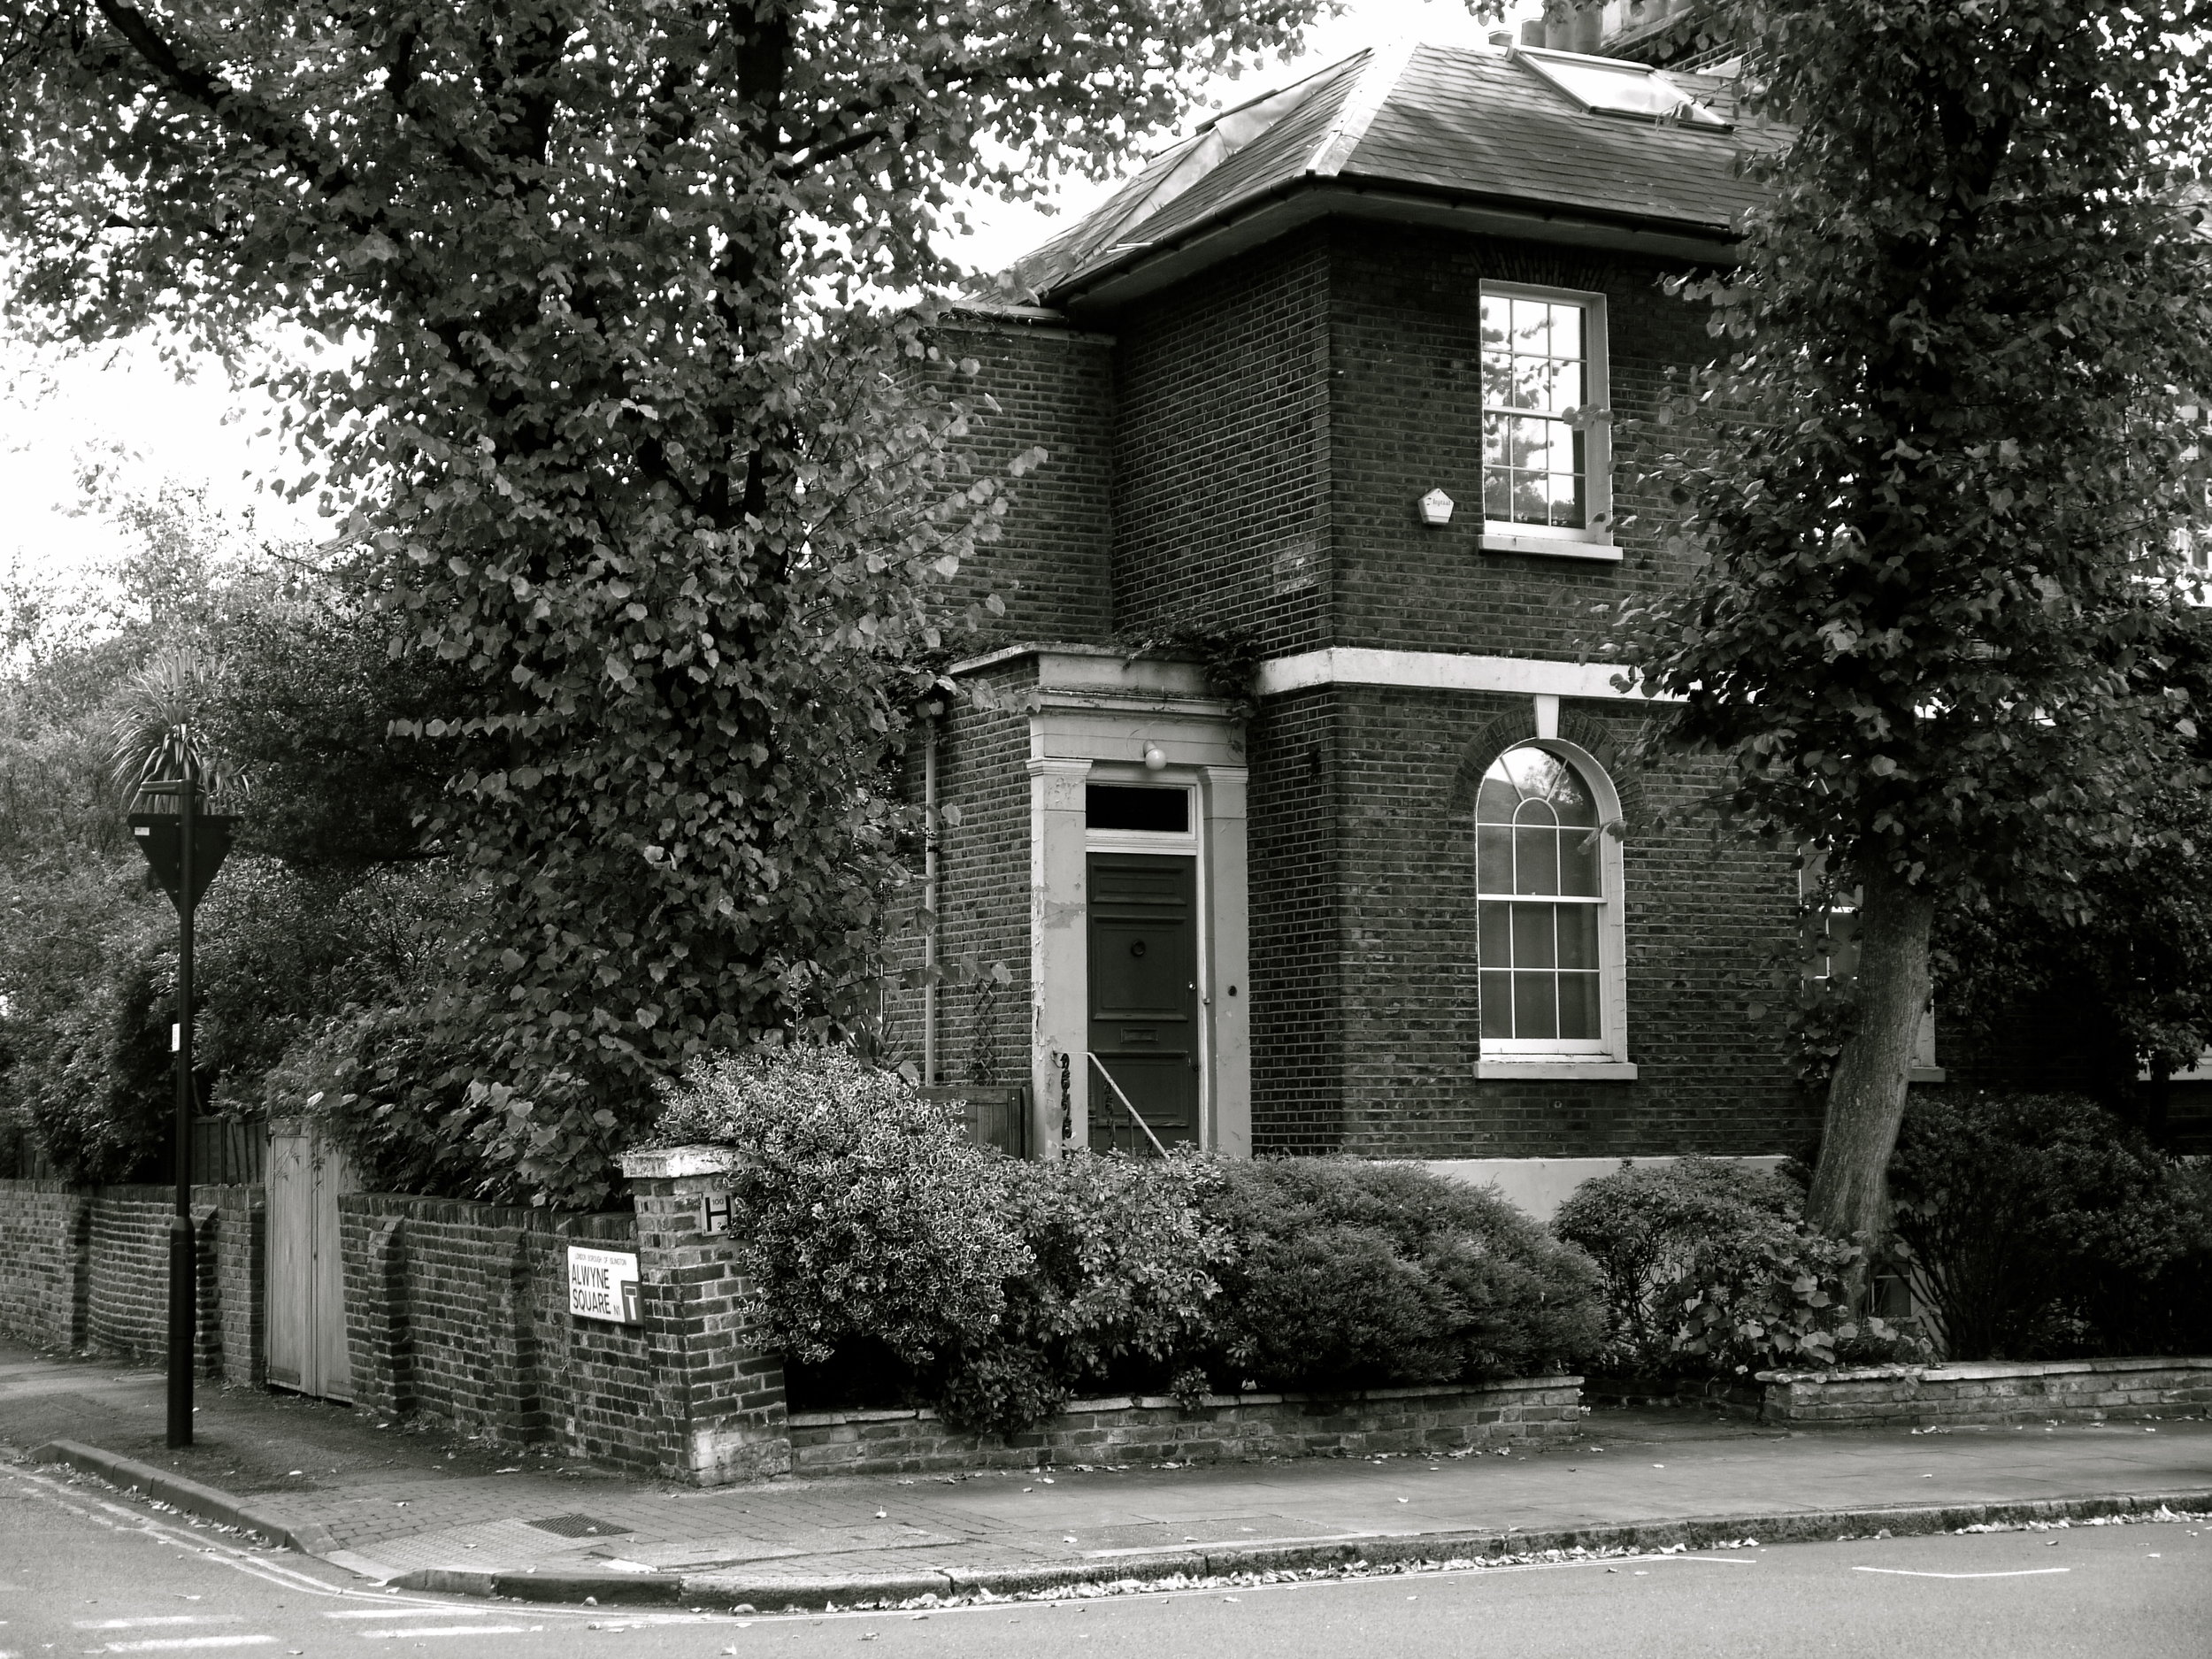 A semi-detached house in Canonbury